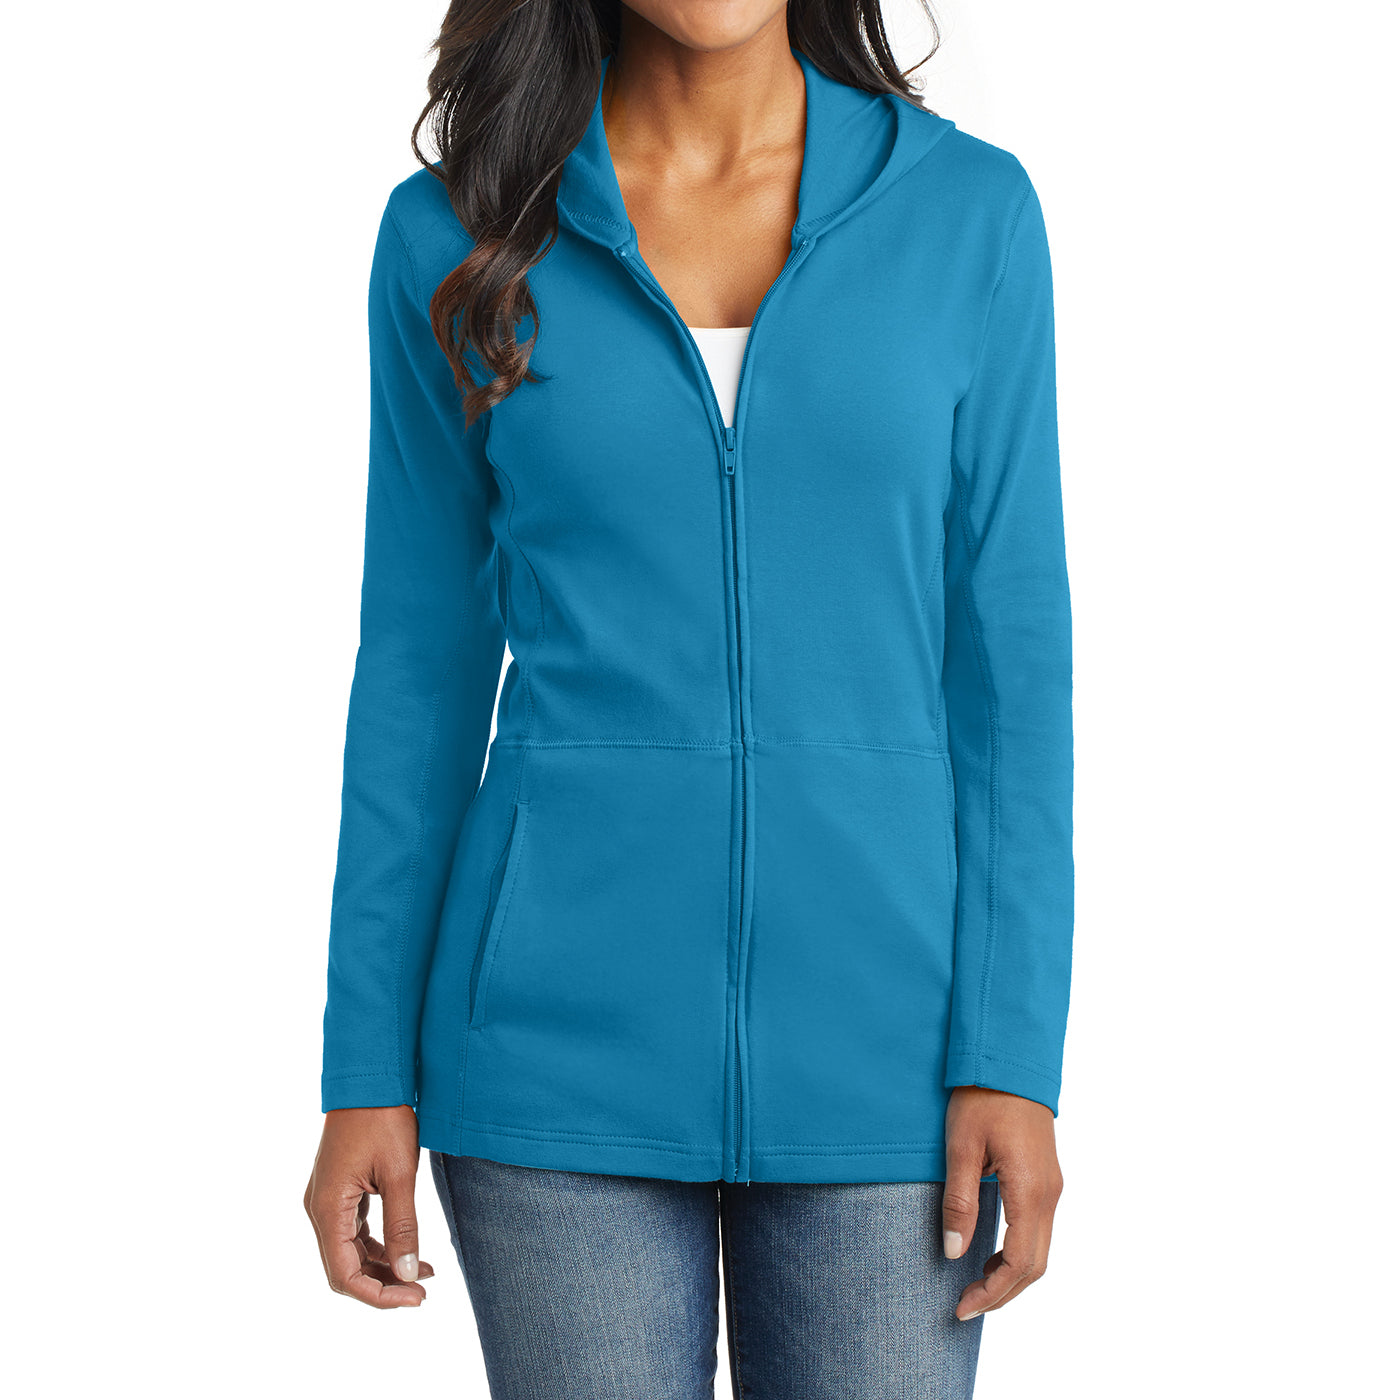 Women's Modern Stretch Cotton Full-Zip Jacket - Mosaic Blue - Front